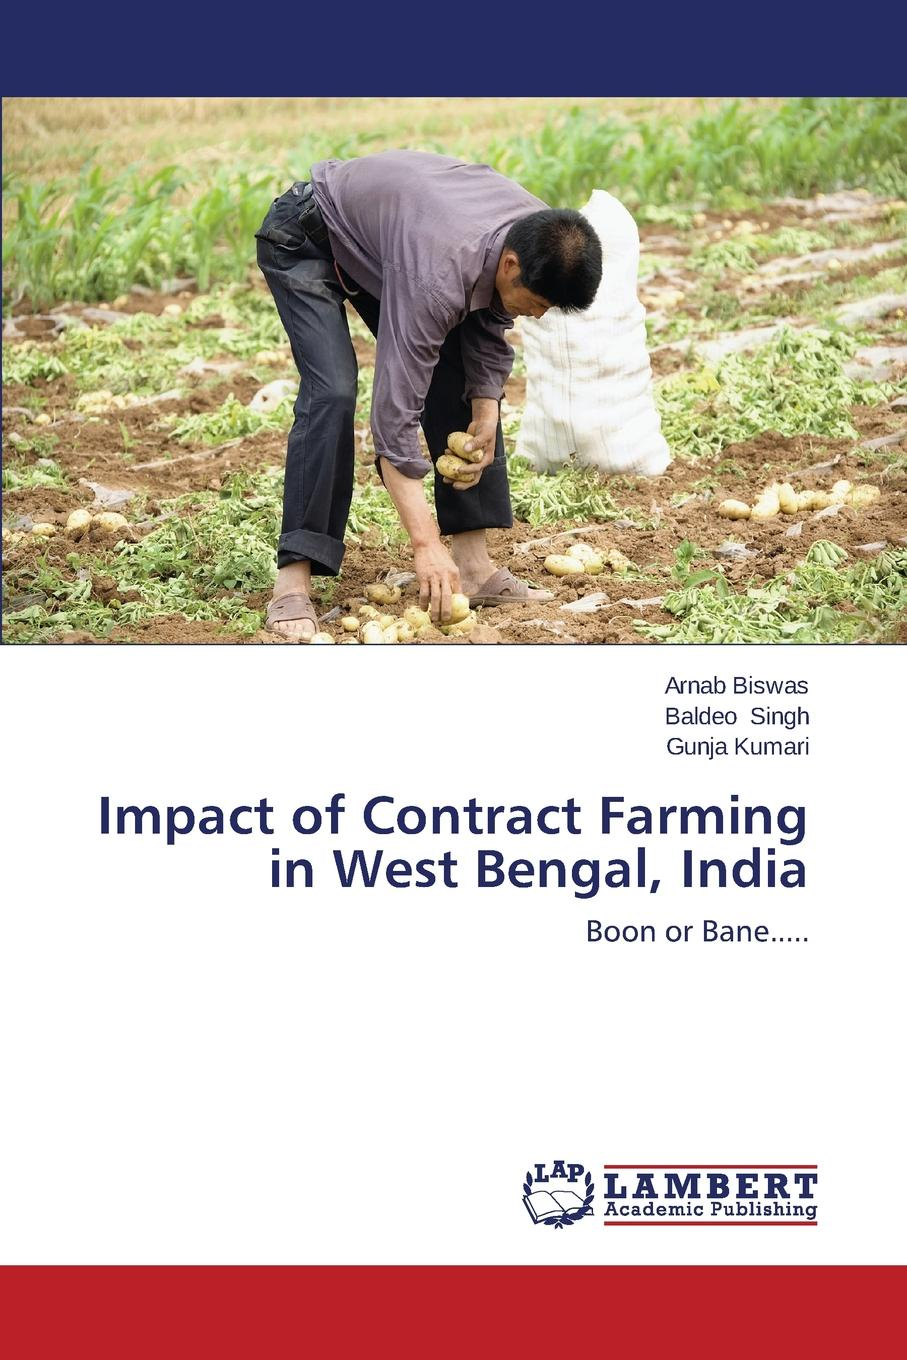 Biswas Arnab, Singh Baldeo, Kumari Gunja Impact of Contract Farming in West Bengal, India недорго, оригинальная цена